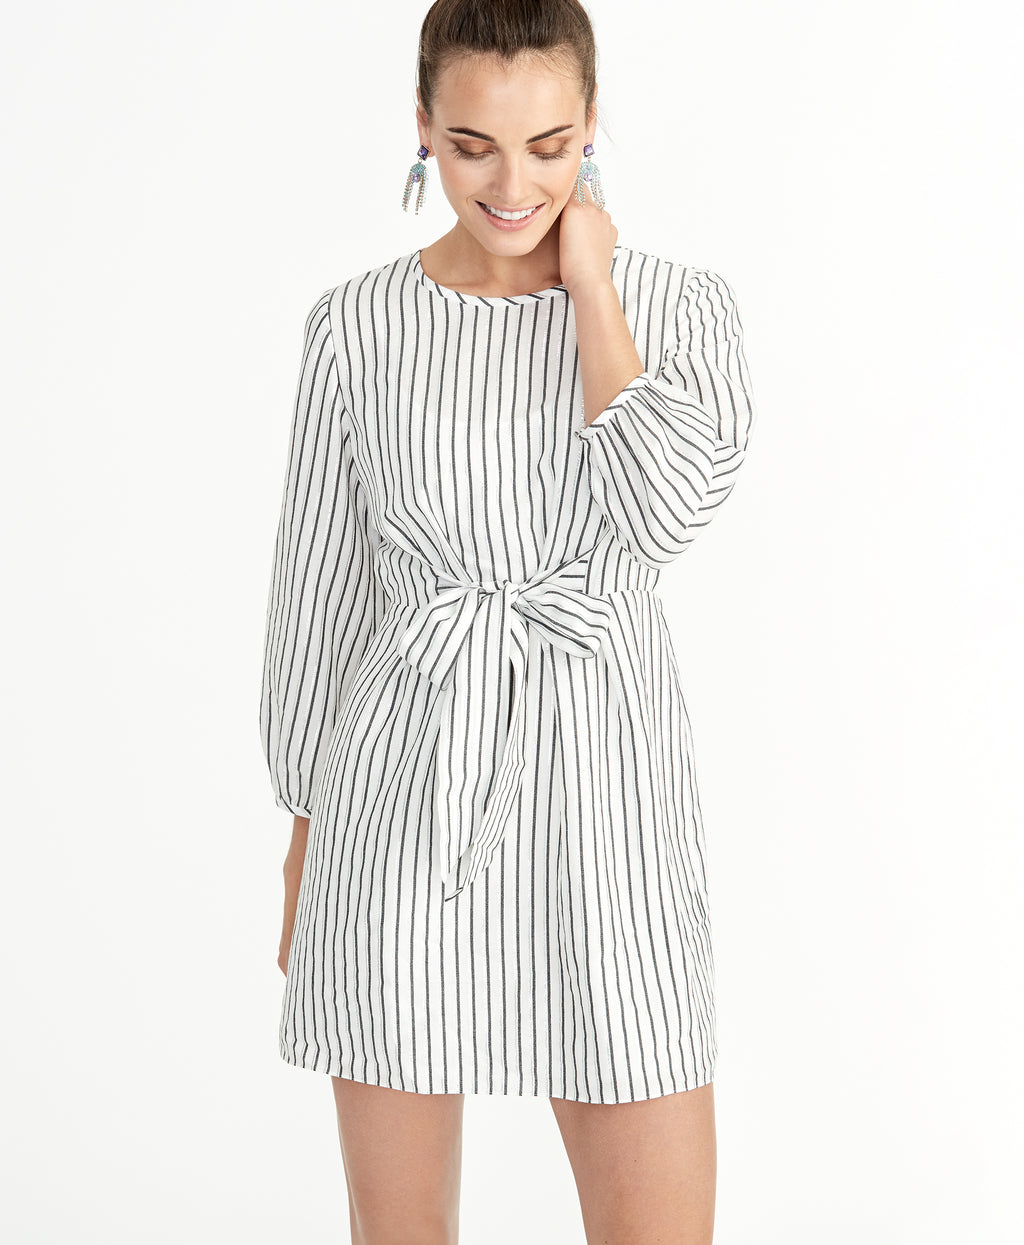 SOPHIA TIE FRONT DRESS | SOPHIA TIE FRONT DRESS